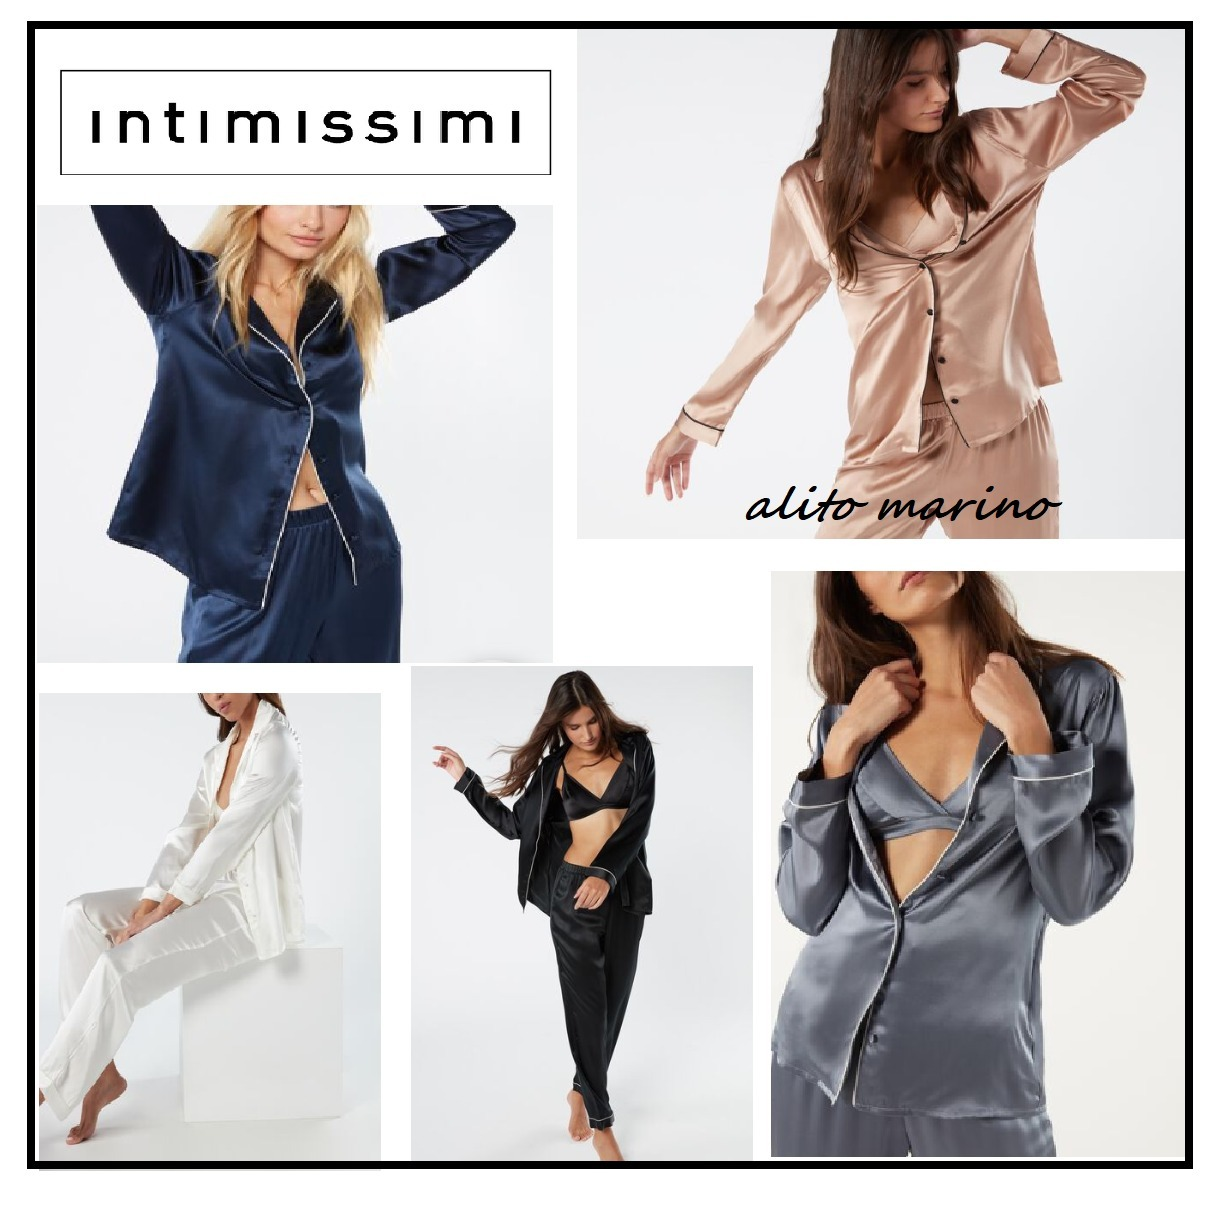 shop intimissimi clothing